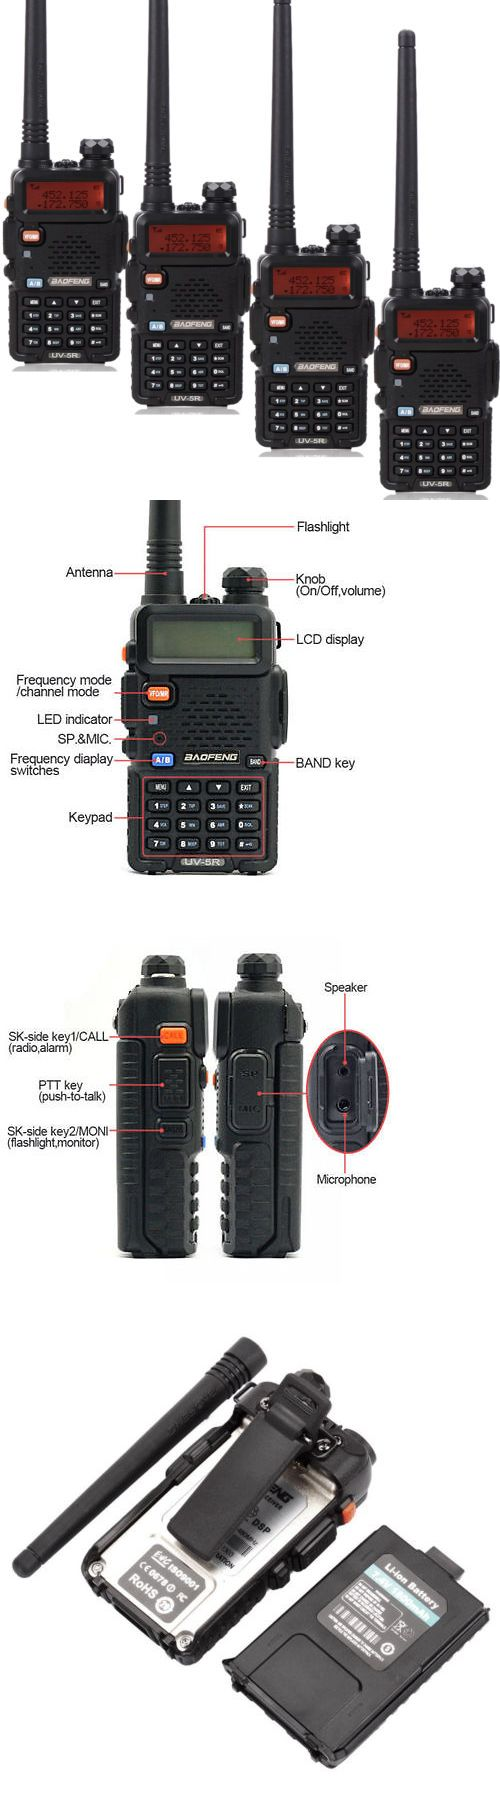 Walkie Talkies Two-Way Radios: 4Pcs Baofeng Uv-5R Vhf/Uhf 136-174And400-520Mhz Dtmf Ctcss Ham Radio Walkie Talkie BUY IT NOW ONLY: $100.59